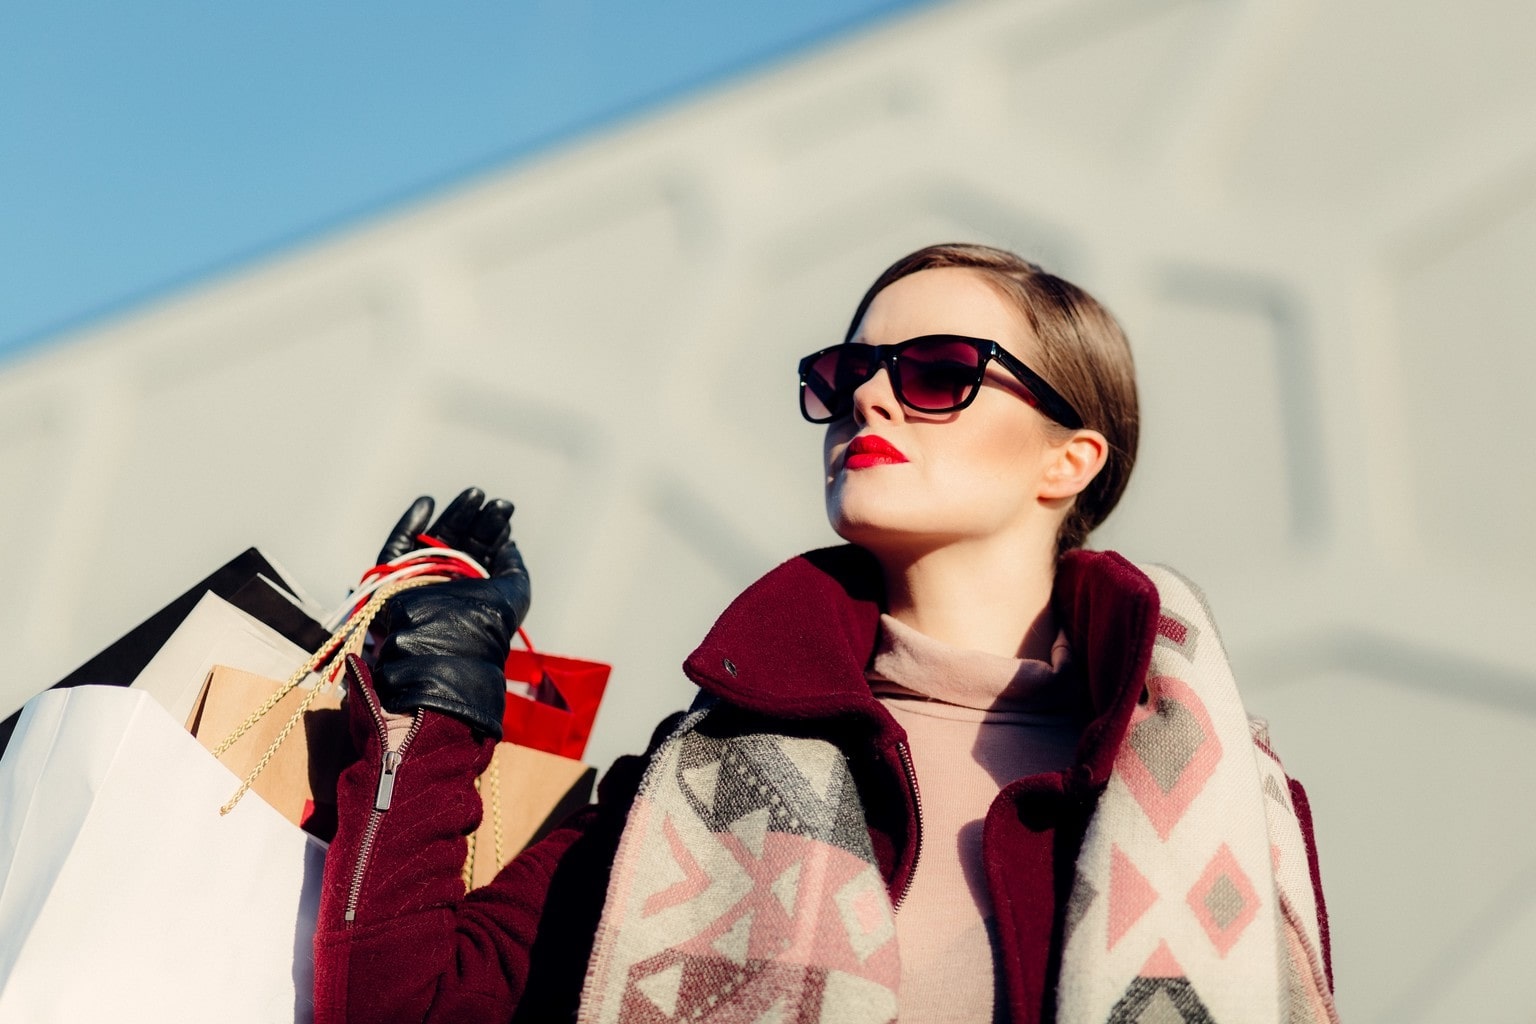 Woman in Sunglasses Holding Shopping Bags